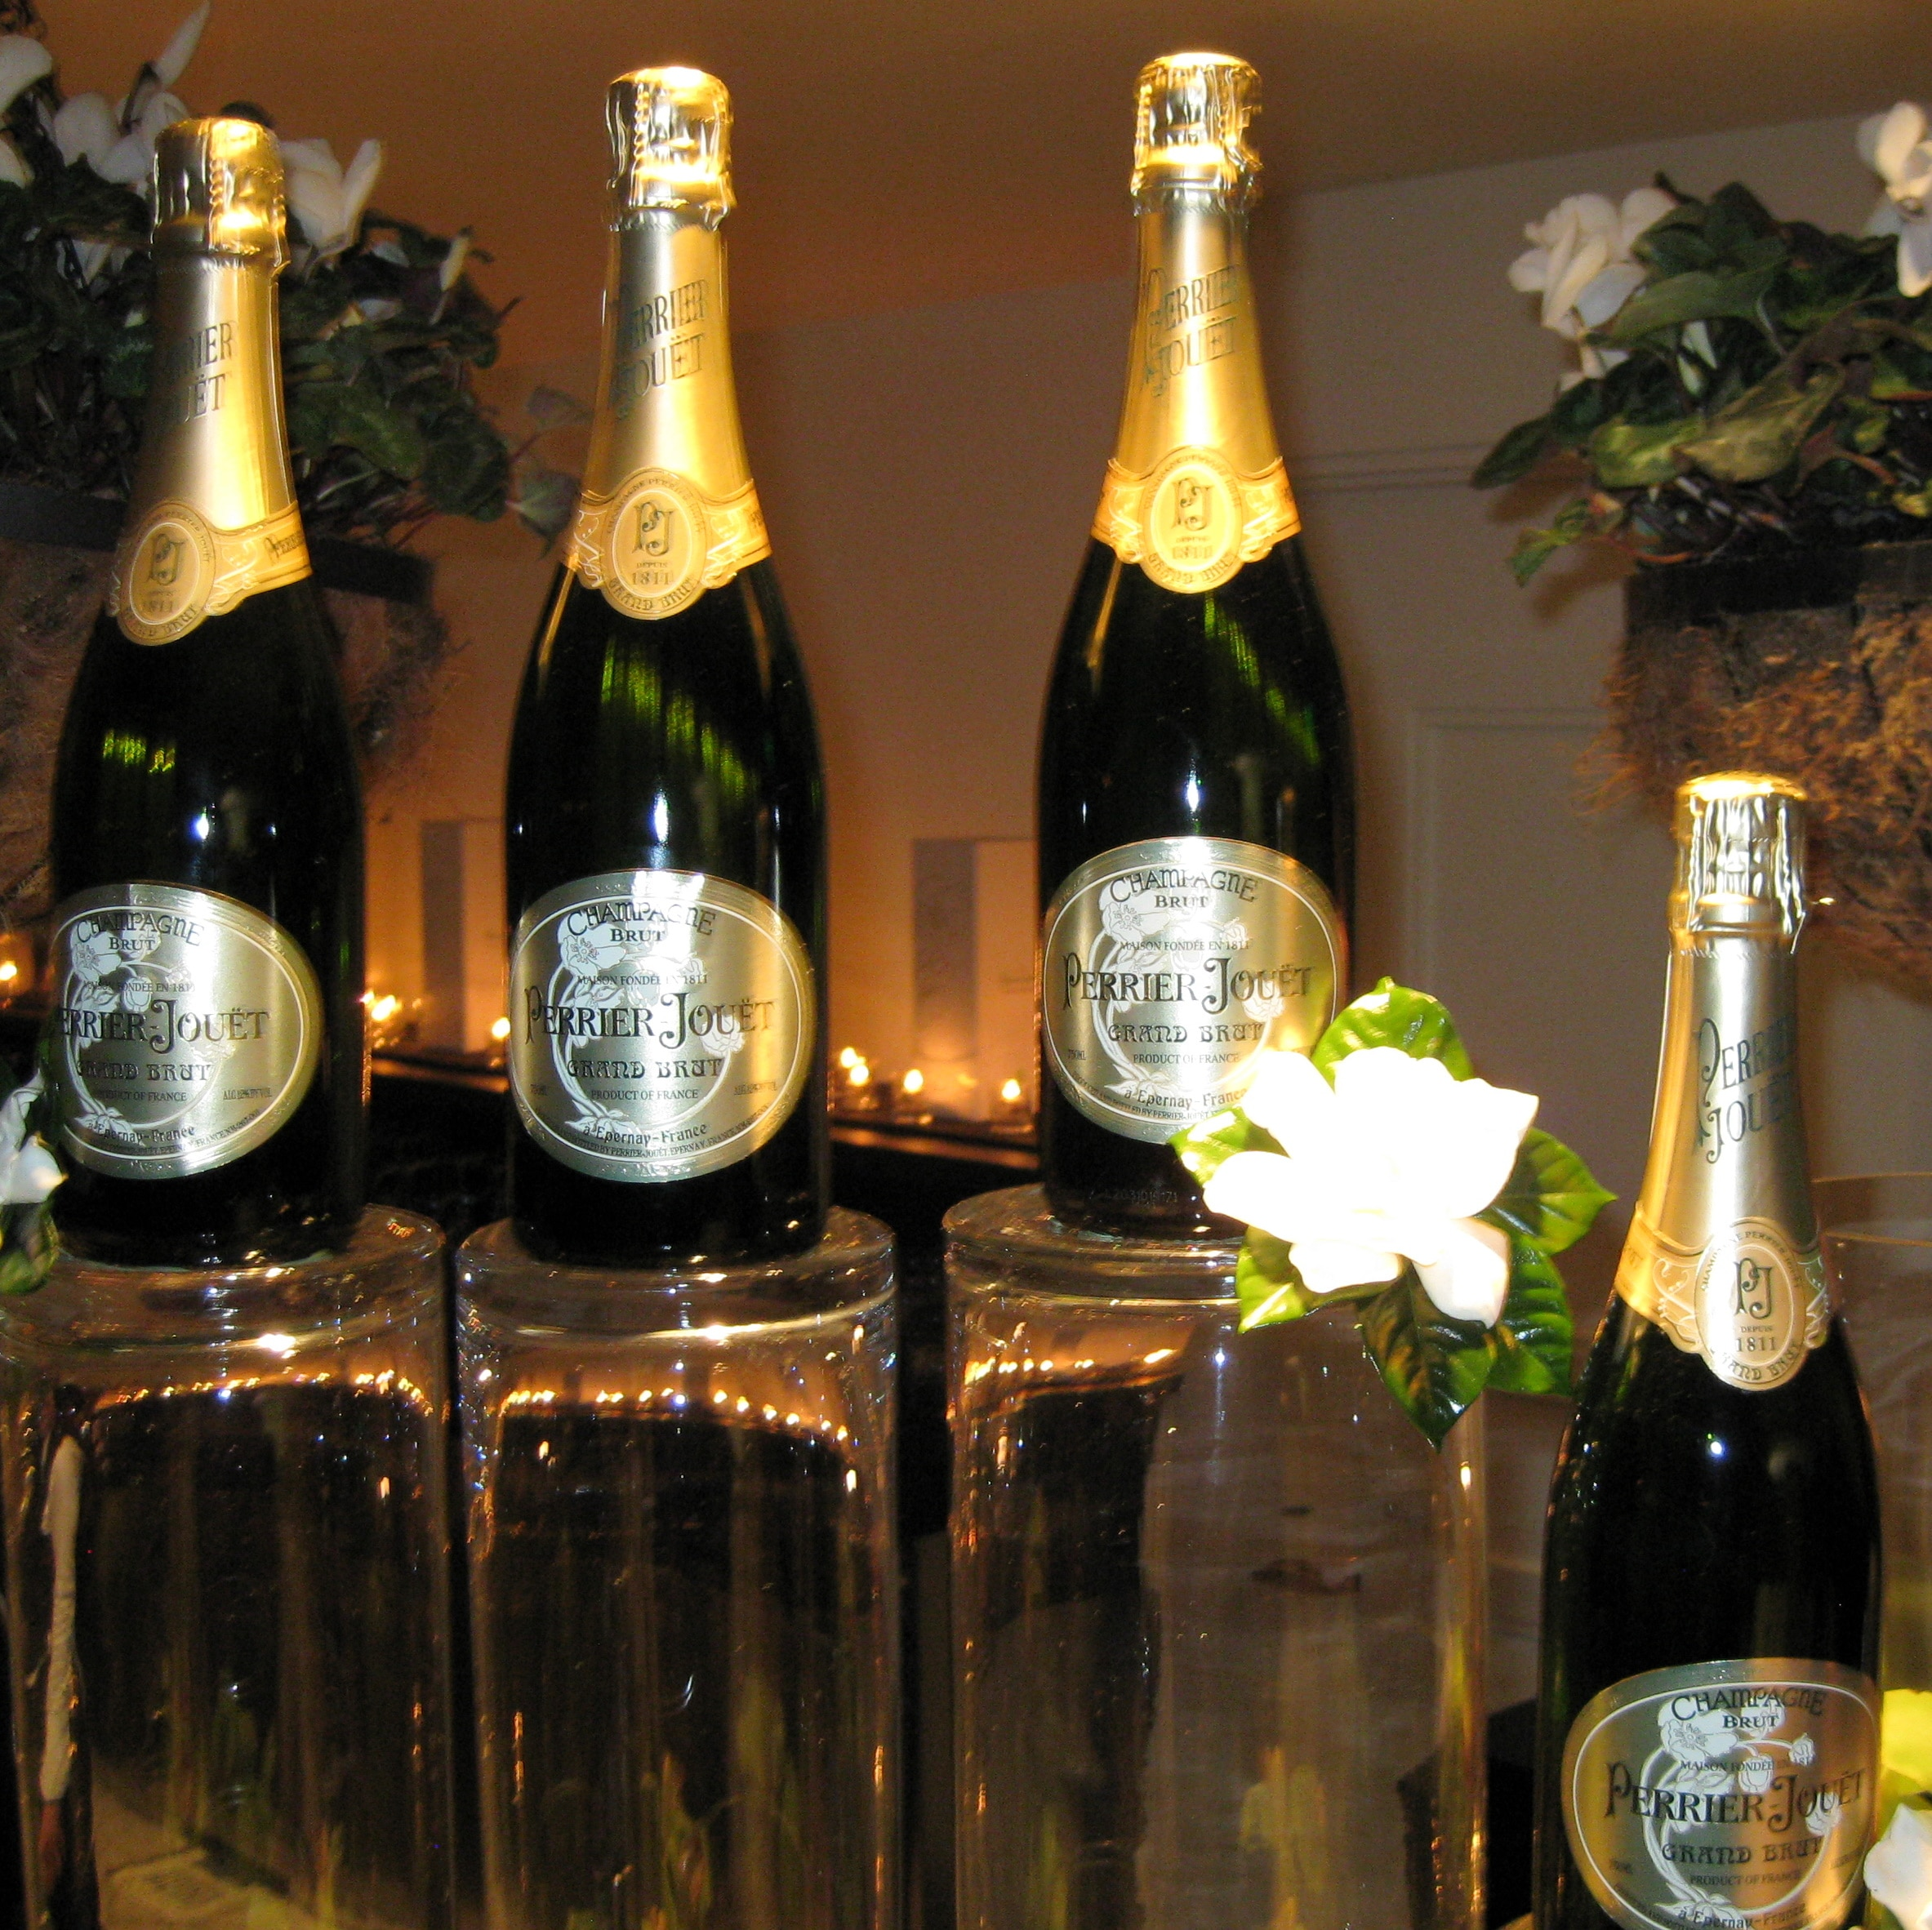 Champagne Perrier Jouet Grand